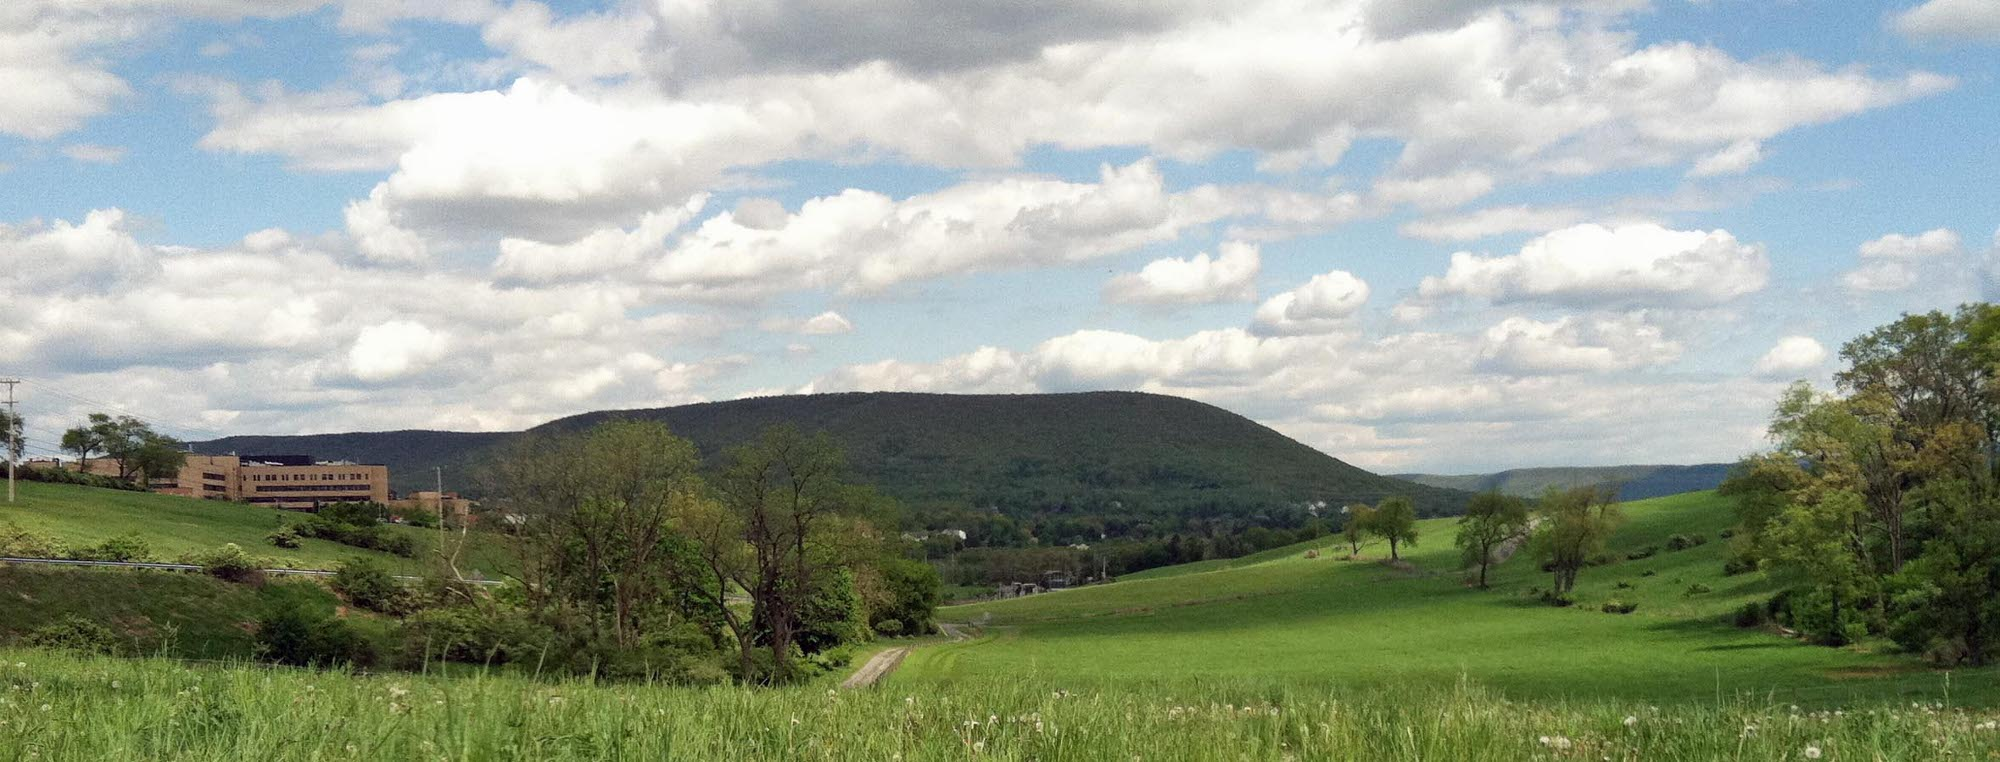 Mount-Nittany-with-Flowers-cropped